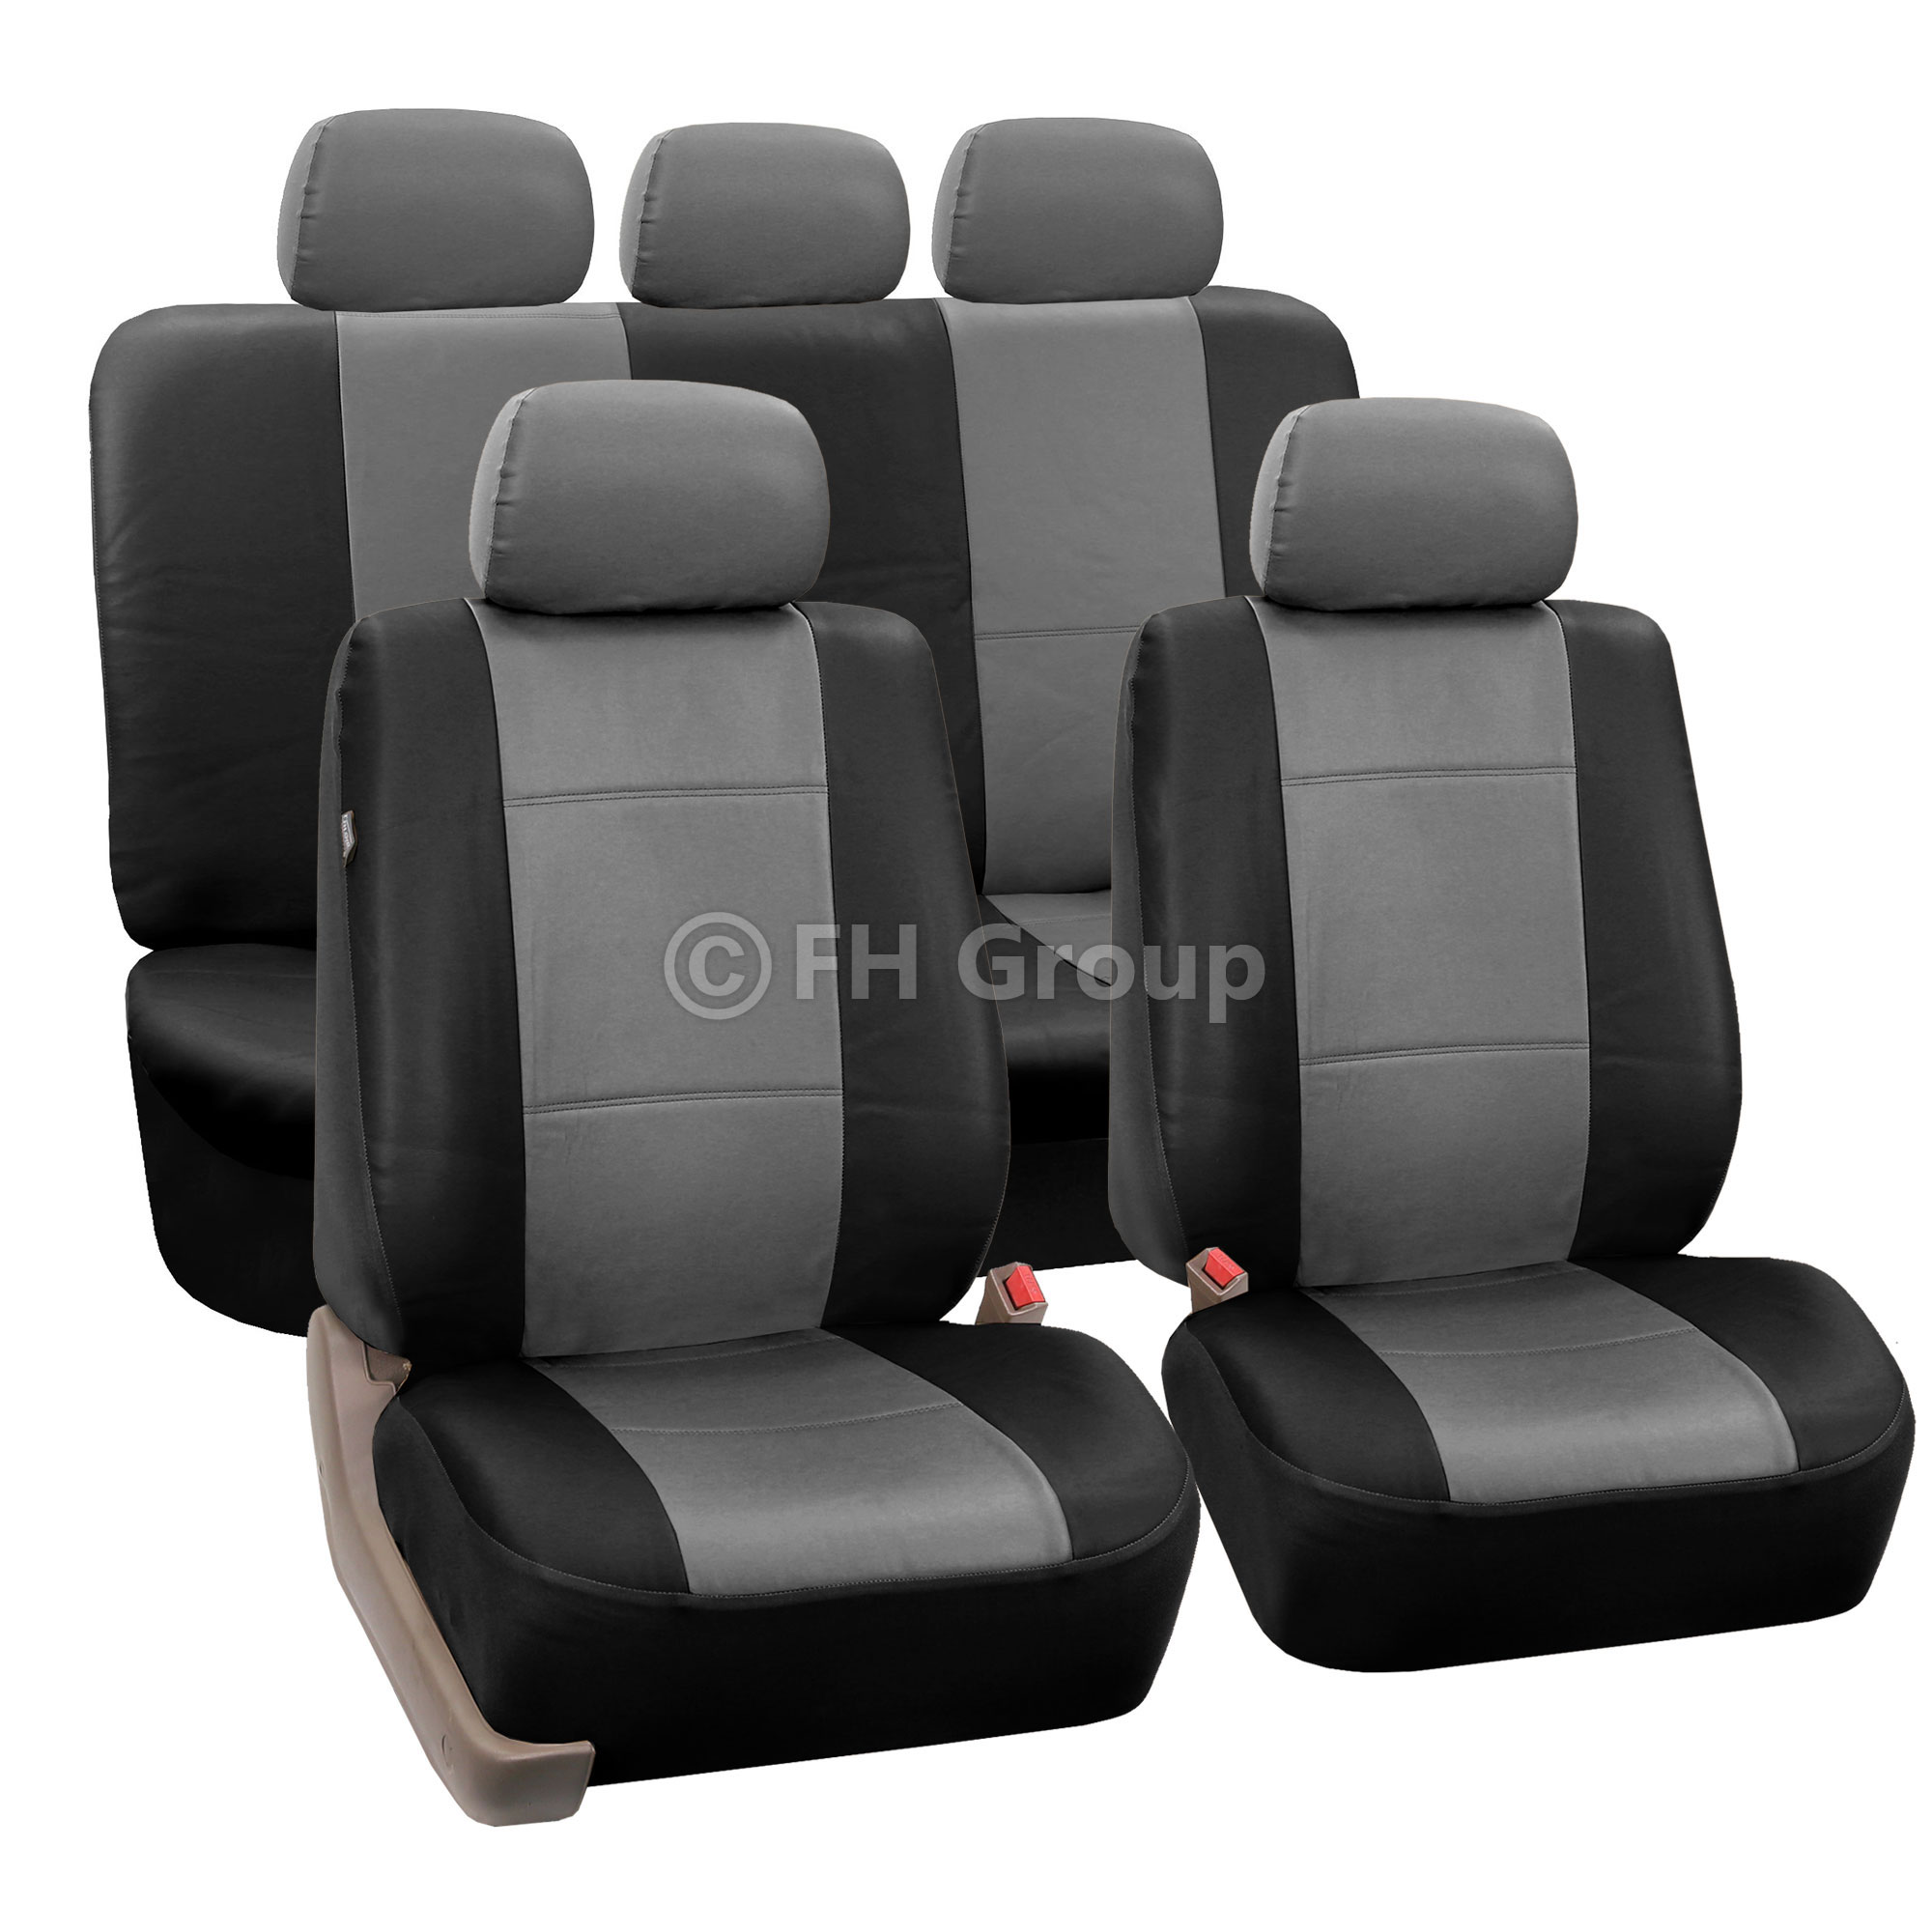 pu leather car seat covers w carpet floor mats for split bench ebay. Black Bedroom Furniture Sets. Home Design Ideas